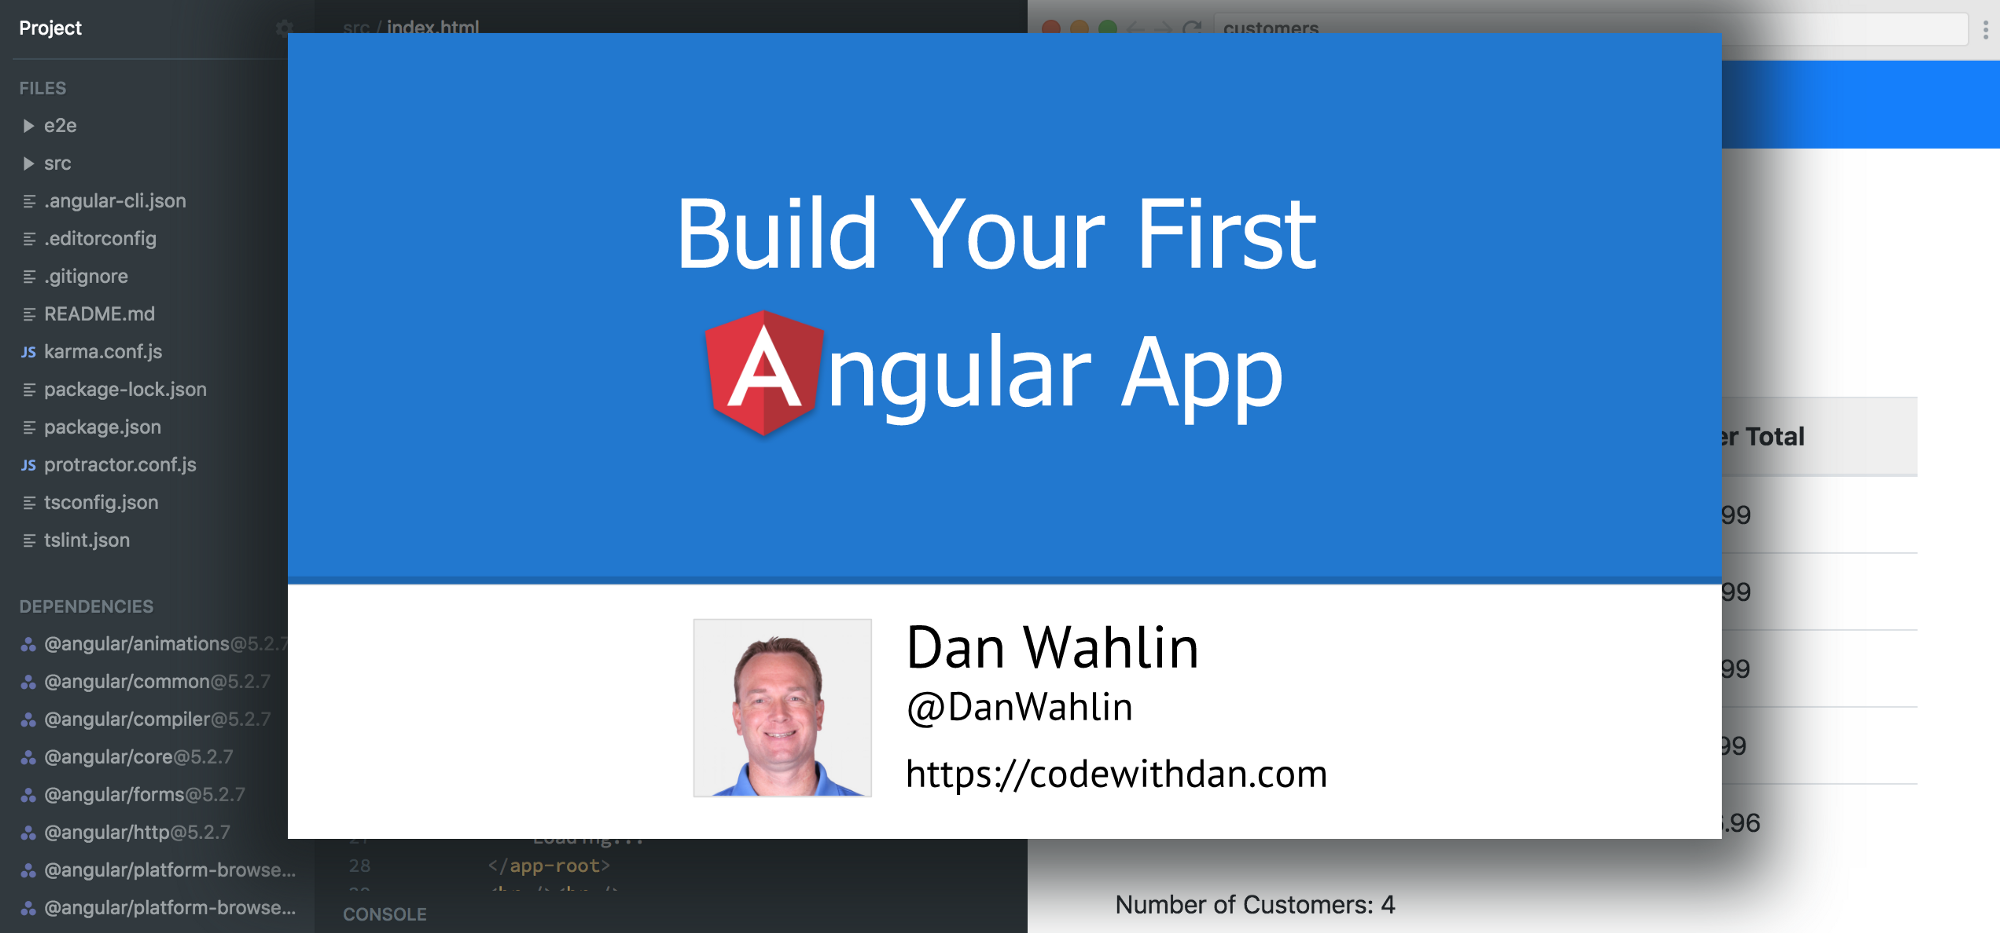 Want to learn Angular? Here's our free 33-part course by Dan Wahlin!